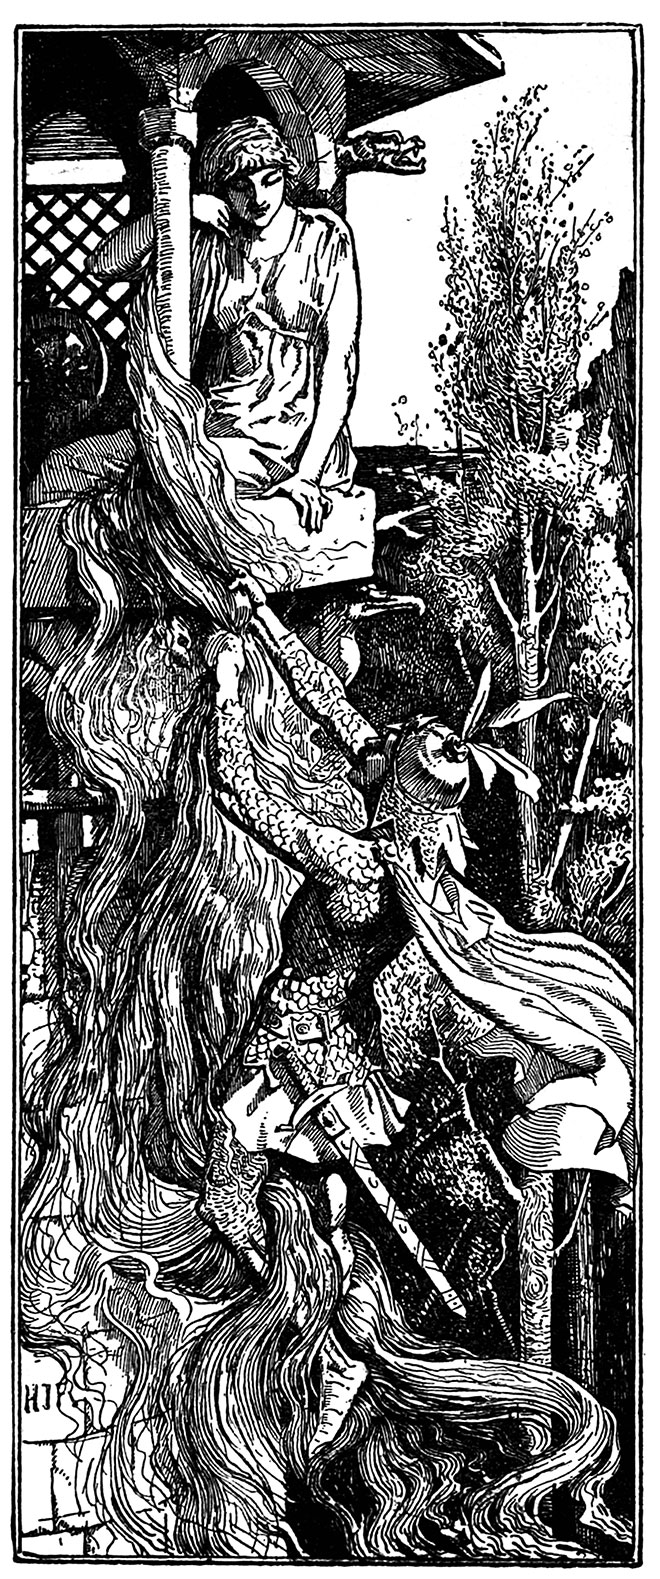 'Rapunzel' - The Red Fairy Book, H. J. Ford, 1890.